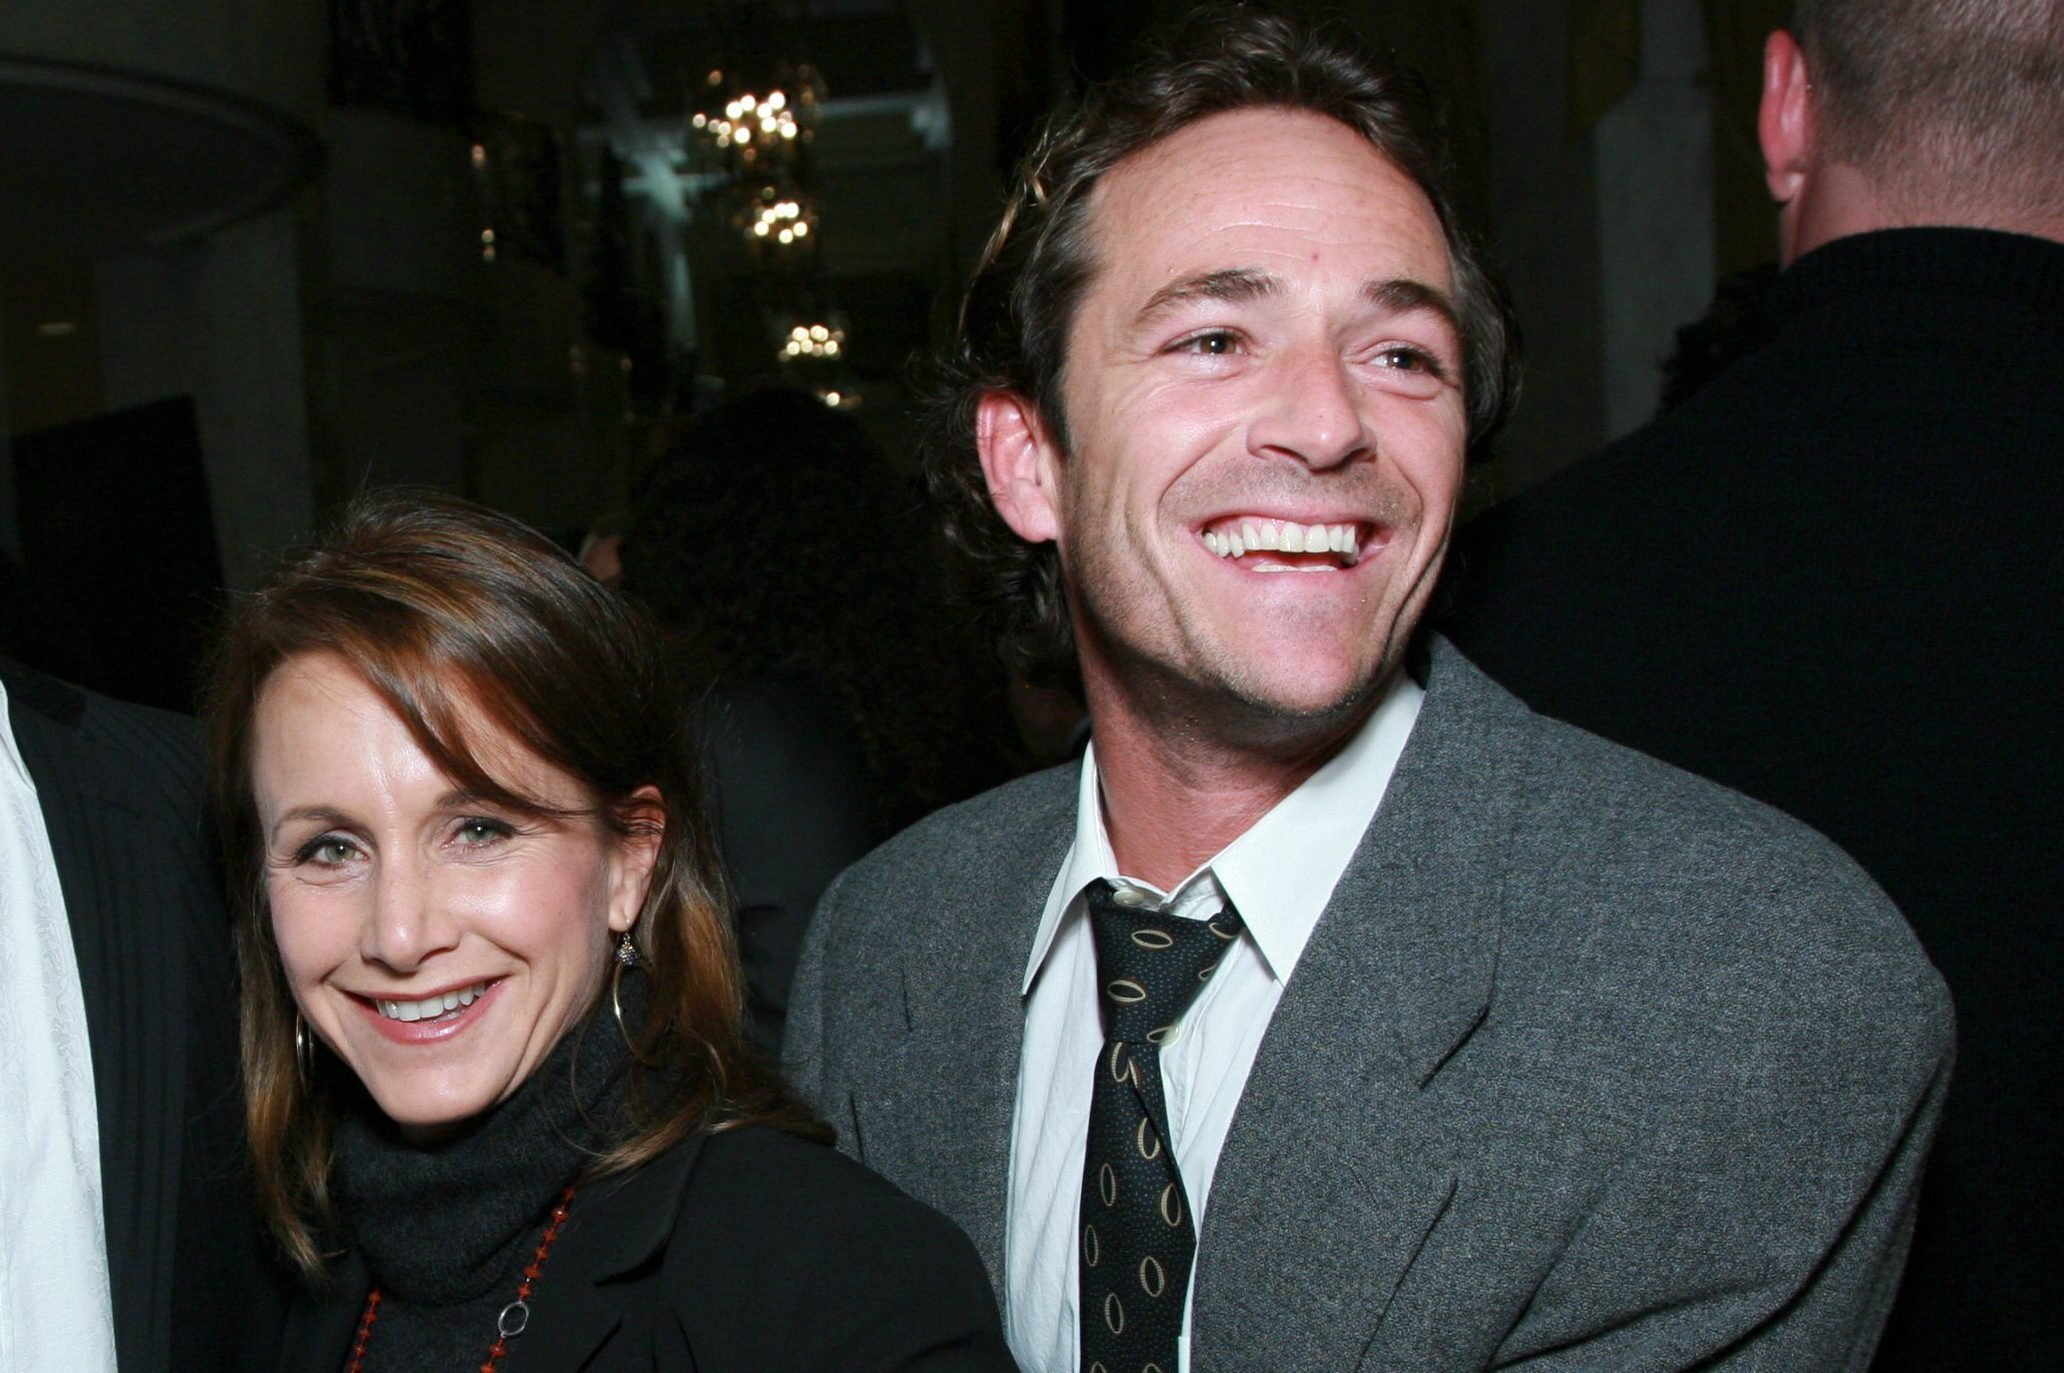 Mandatory Credit: Photo by Alex Berliner/BEI/Shutterstock (712390u) Ian Ziering, Gabrielle Carteris and Luke Perry 7th Annual Discovery Awards Dinner, Beverly Hills, Los Angeles, America - 08 Nov 2007 November 8, 2007 - Beverly Hills, CA. Ian Ziering, Gabrielle Carteris and Luke Perry . Zimmer Children's Museum hosts the 7th annual Discovery Award Dinner honoring Missy Halperin and Linda Simensky .The event was held at the Beverly Wilshire Hotel. Photo by Alex Berliner®Berliner Studio/BEImages ***EXCLUSIVE***EXCLUSIVE***EXCLUSIVE***